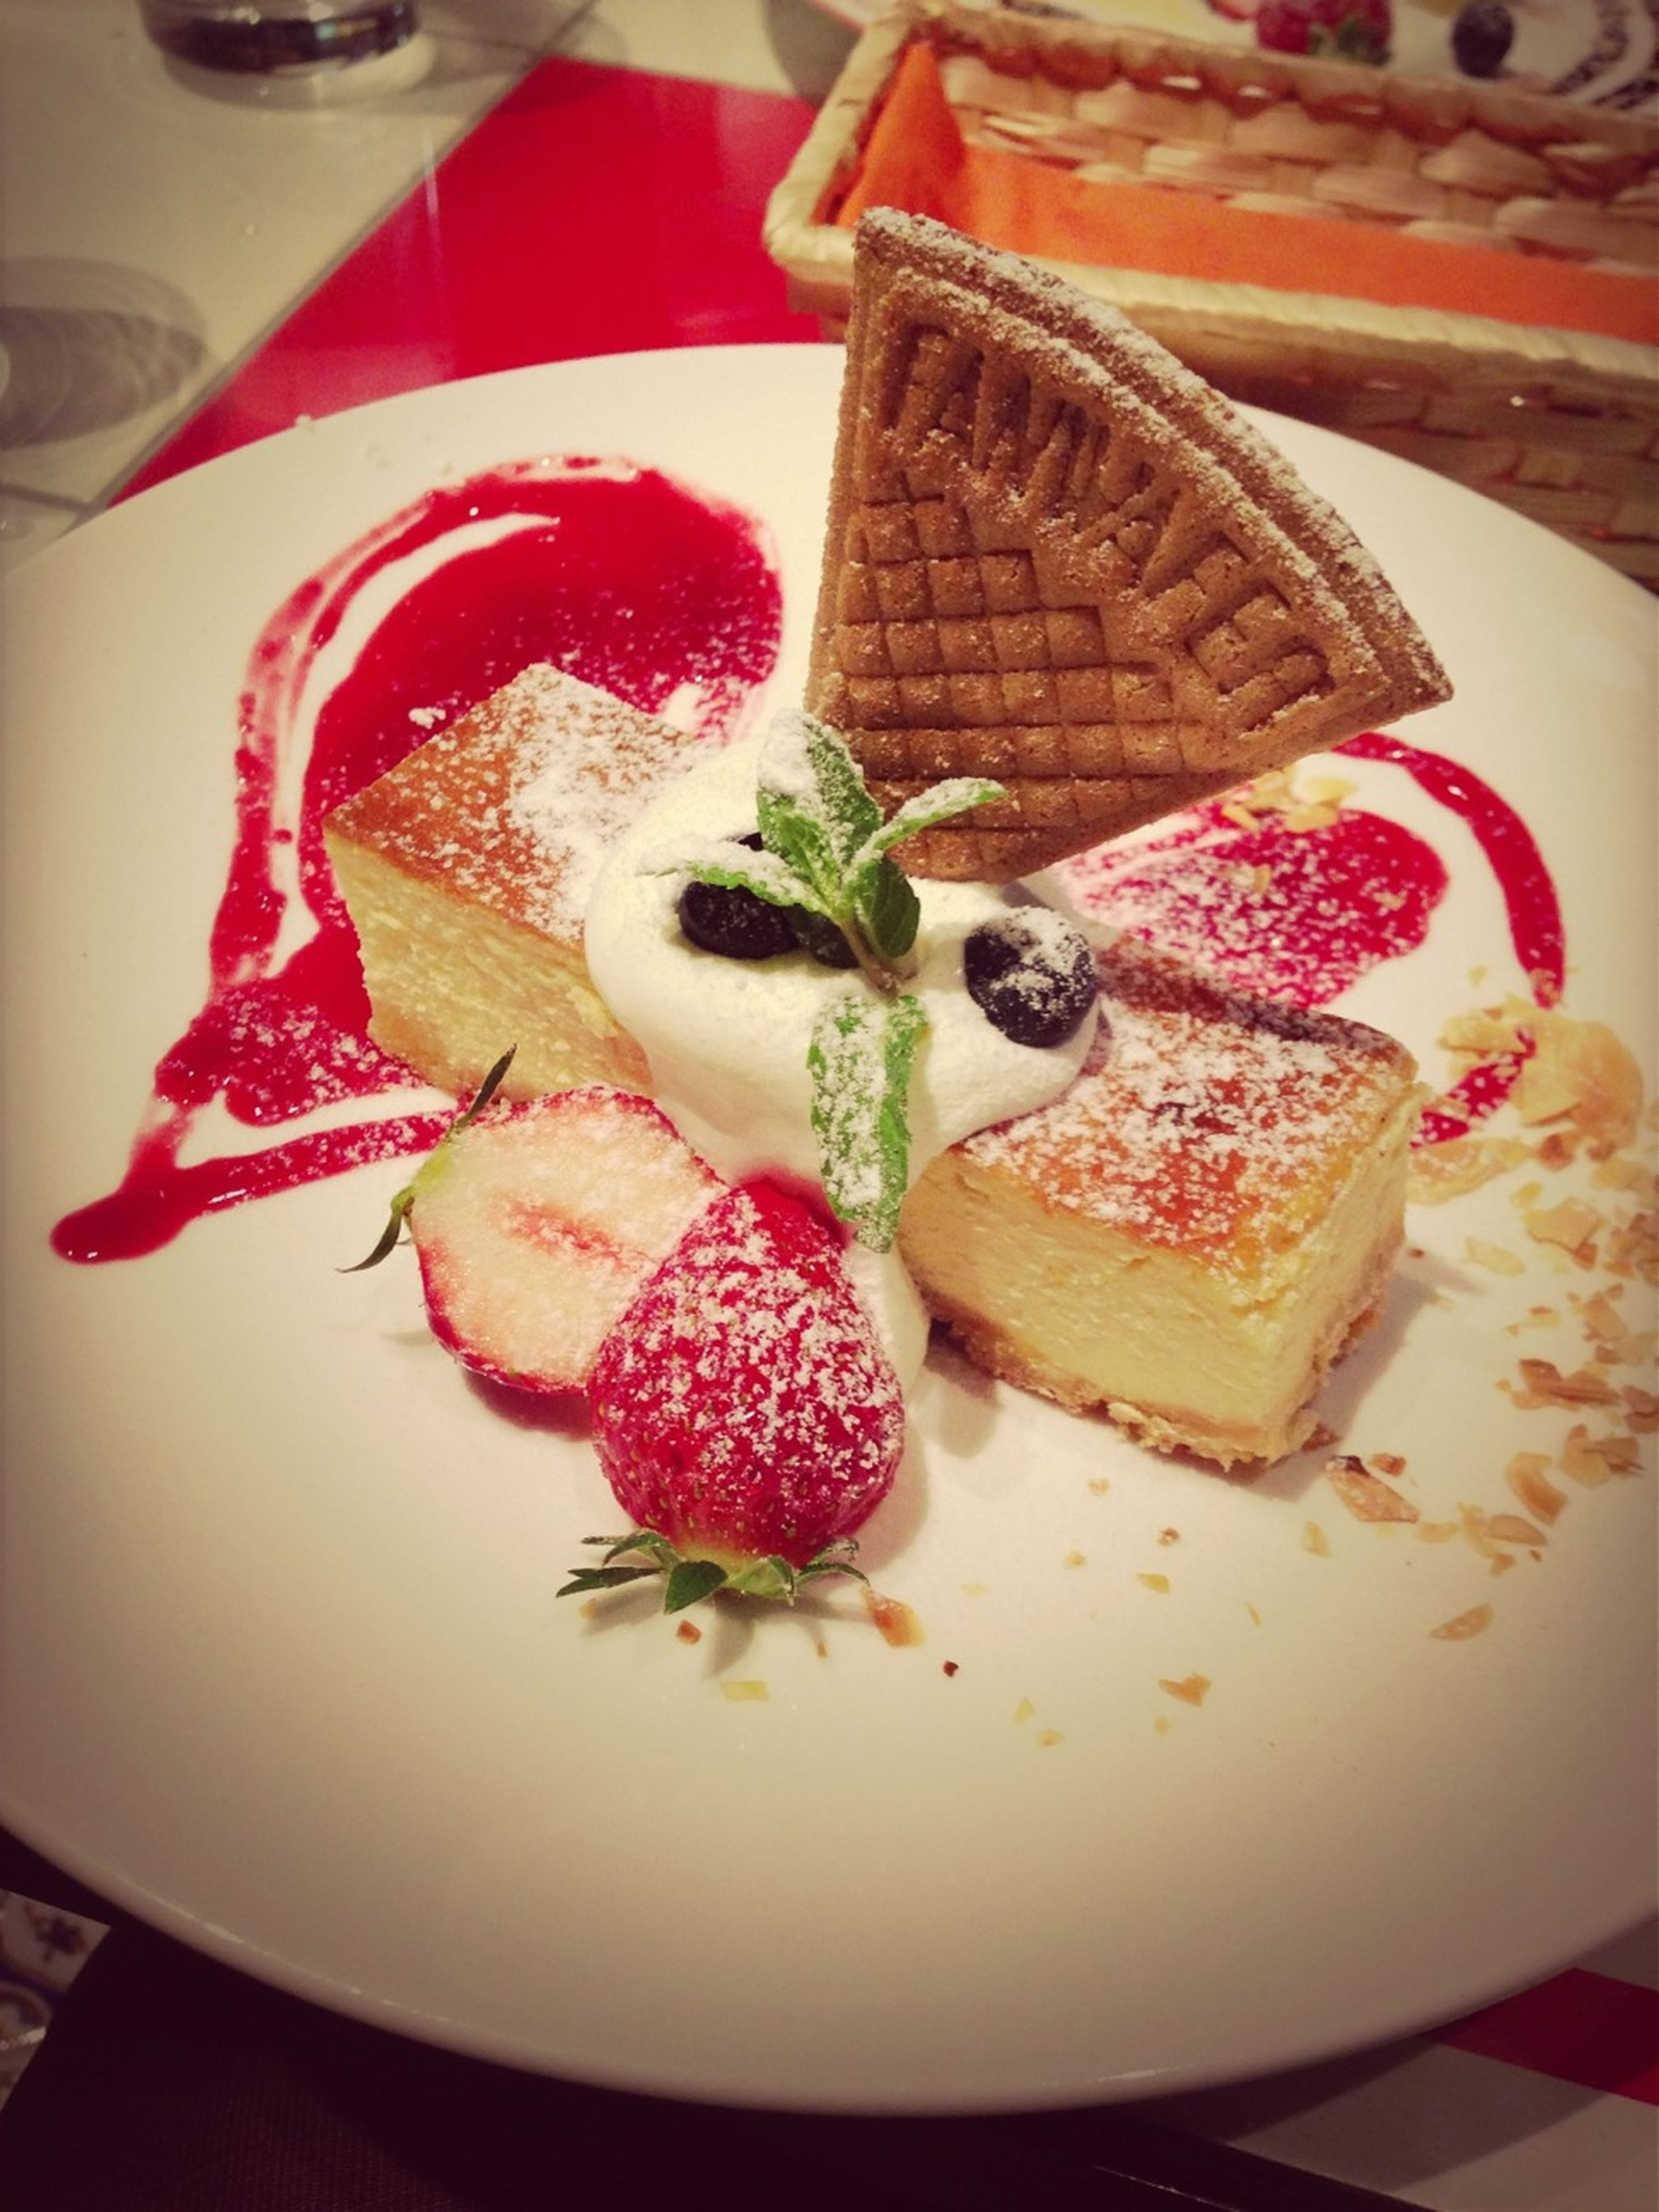 indoors, food and drink, food, freshness, plate, ready-to-eat, still life, sweet food, table, indulgence, dessert, strawberry, close-up, cake, fruit, high angle view, unhealthy eating, serving size, temptation